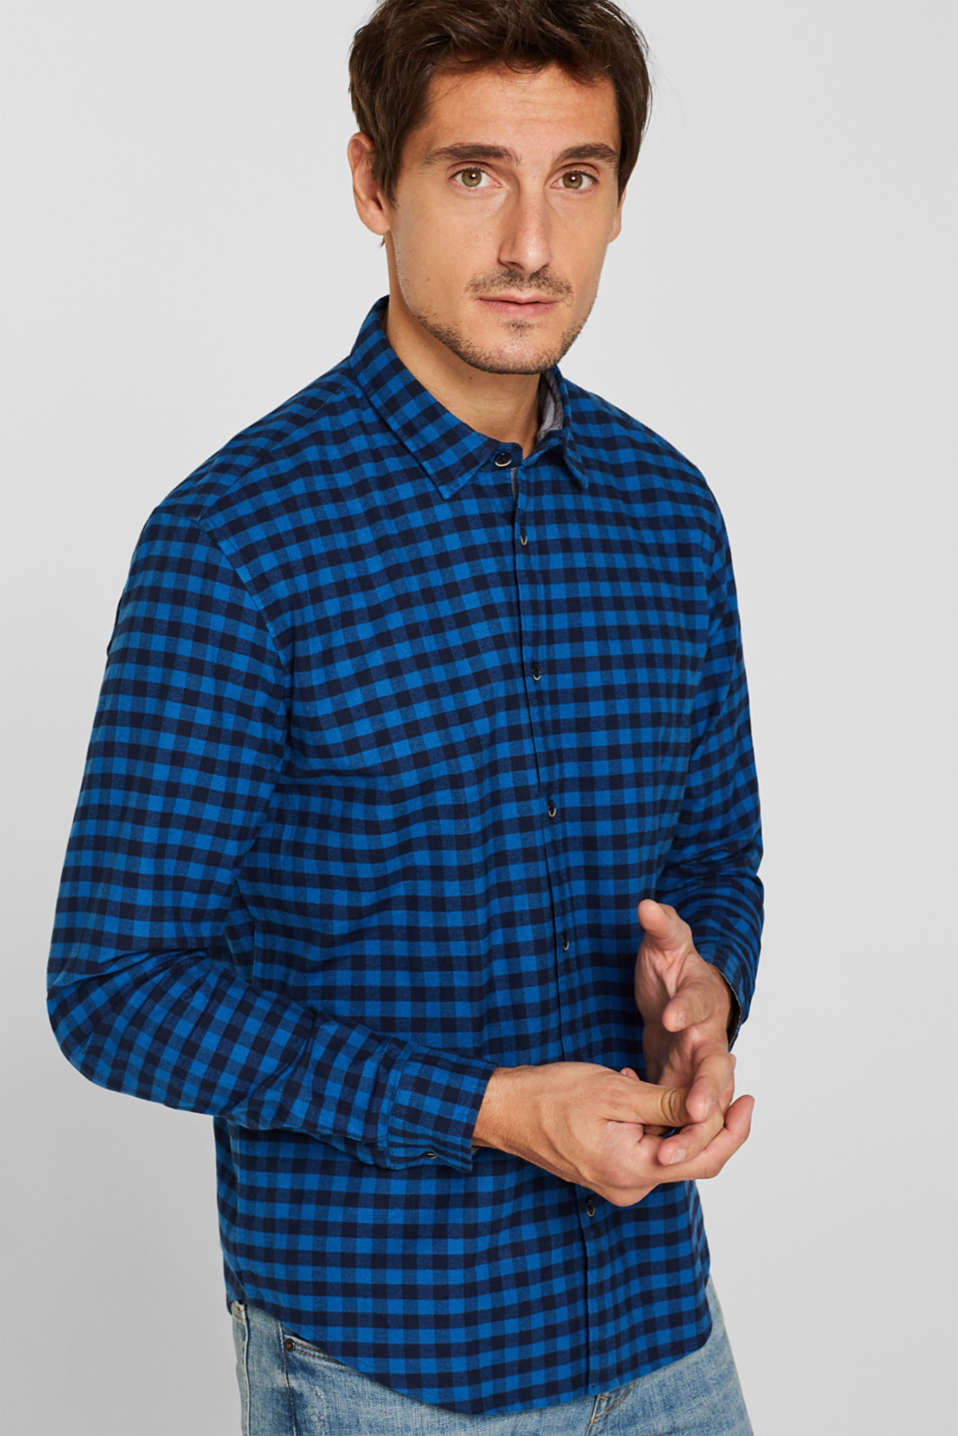 Flannel shirt with checks, made of stretch cotton, NAVY, detail image number 0